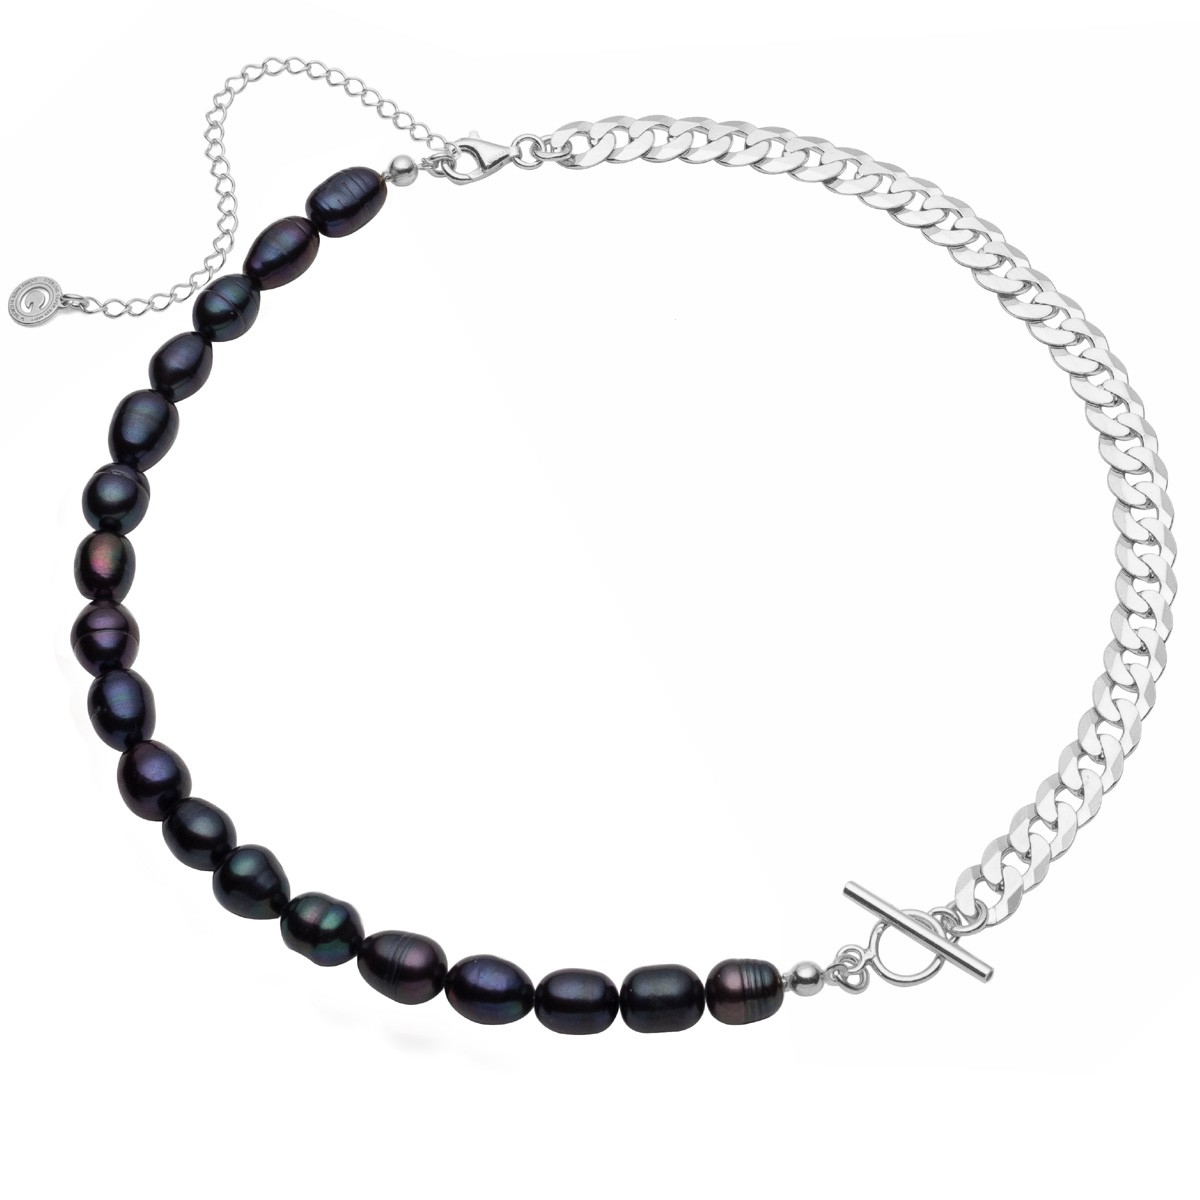 White freshwater pearls choker & curb chain, sterling silver 925